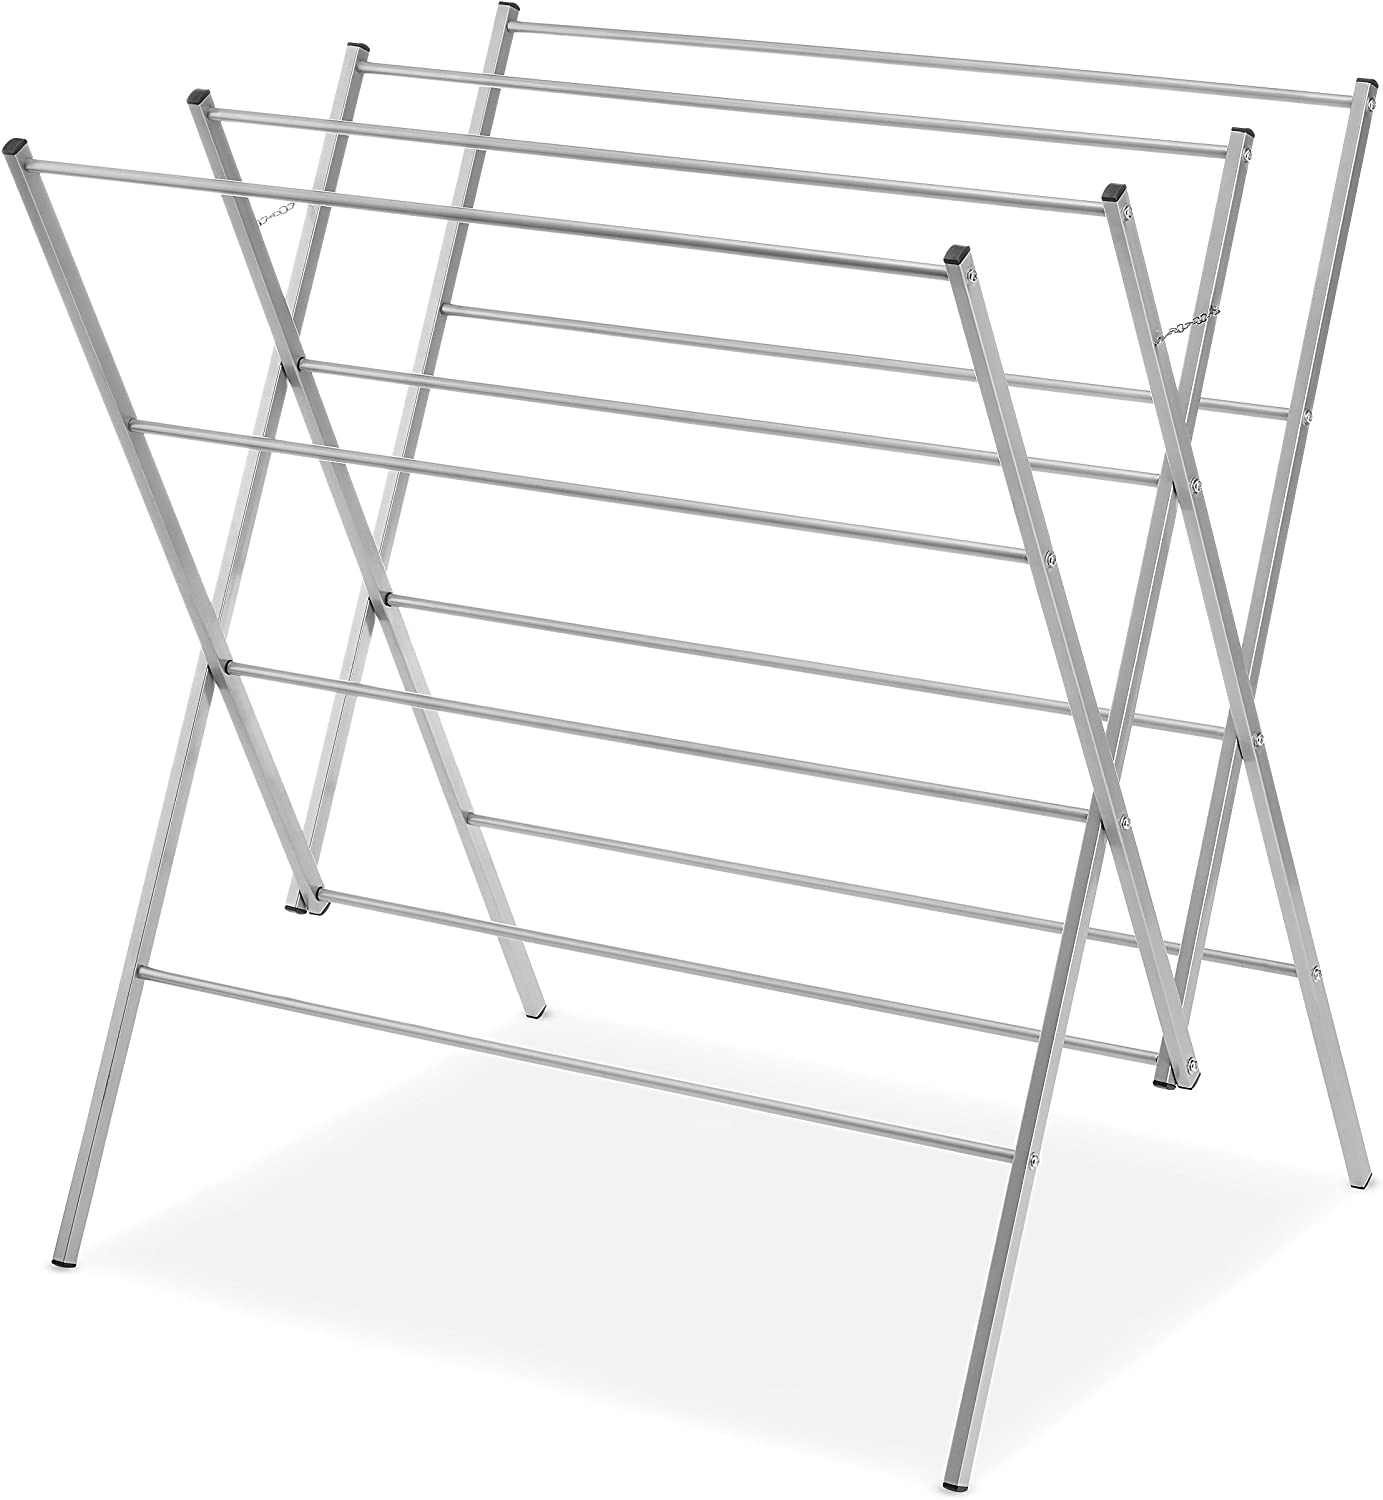 Whitmor Oversized Drying Rack, Silver 6779-8219